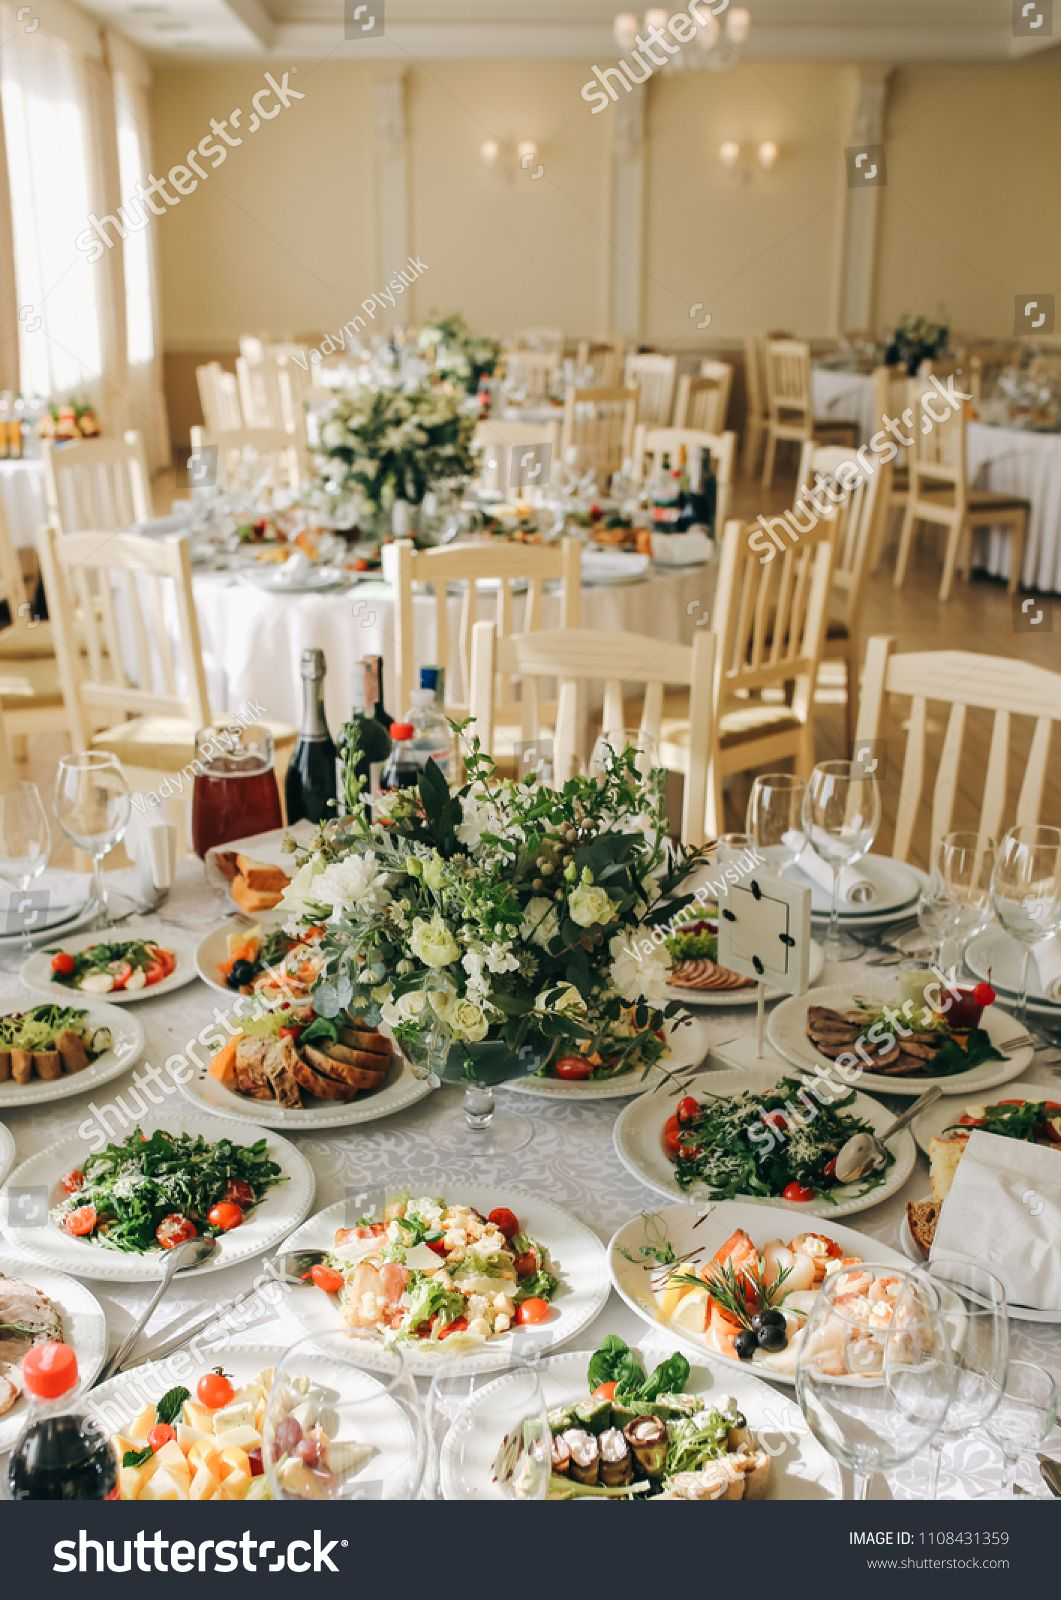 Beautifully Set Round Tables At The Restaurant Delicious Food Wedding Reception White Tablecloths And Flowers Table Cloth